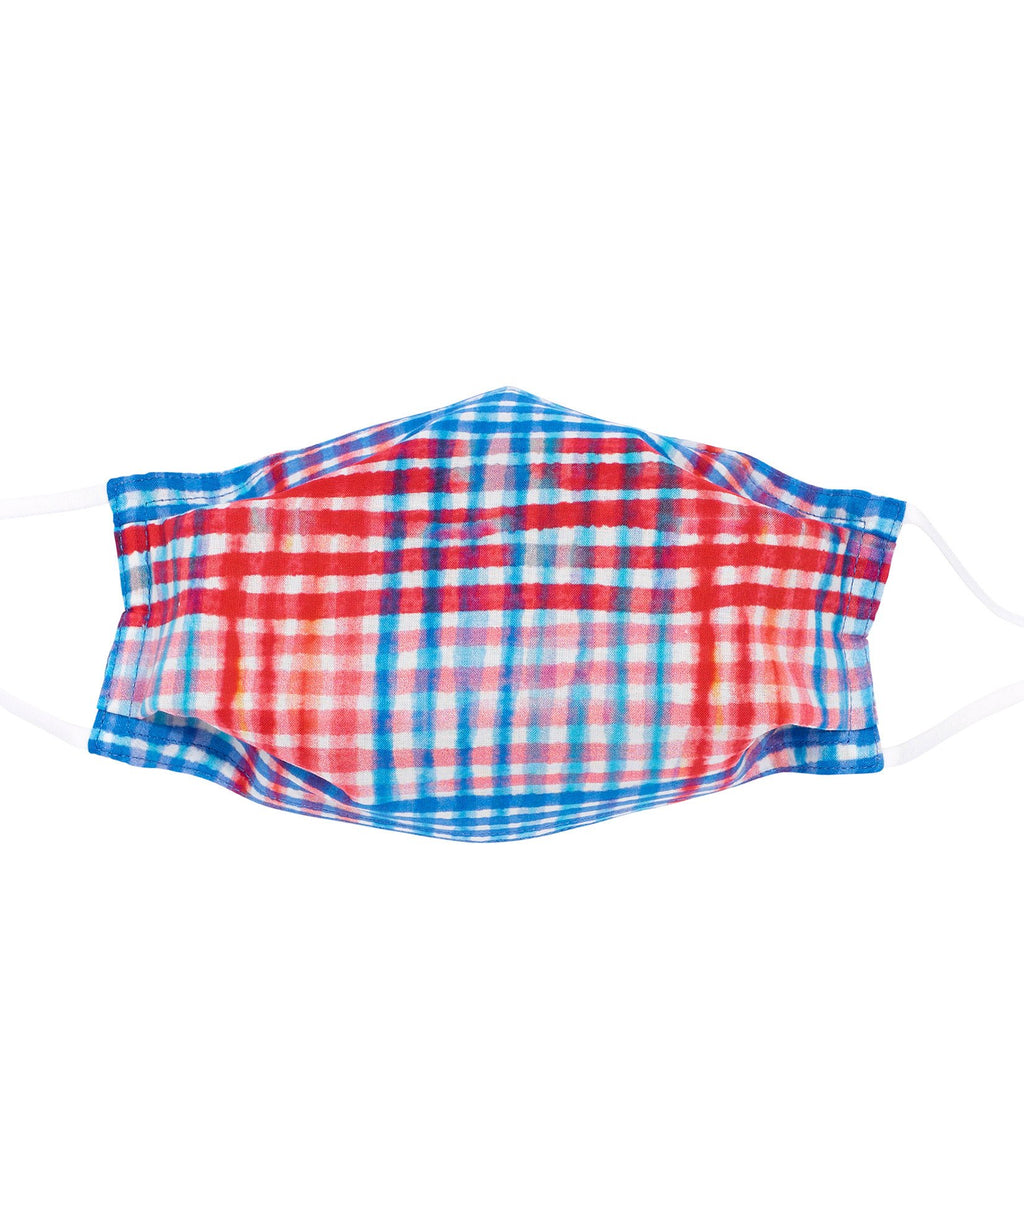 Painted Plaid Cooling Mask